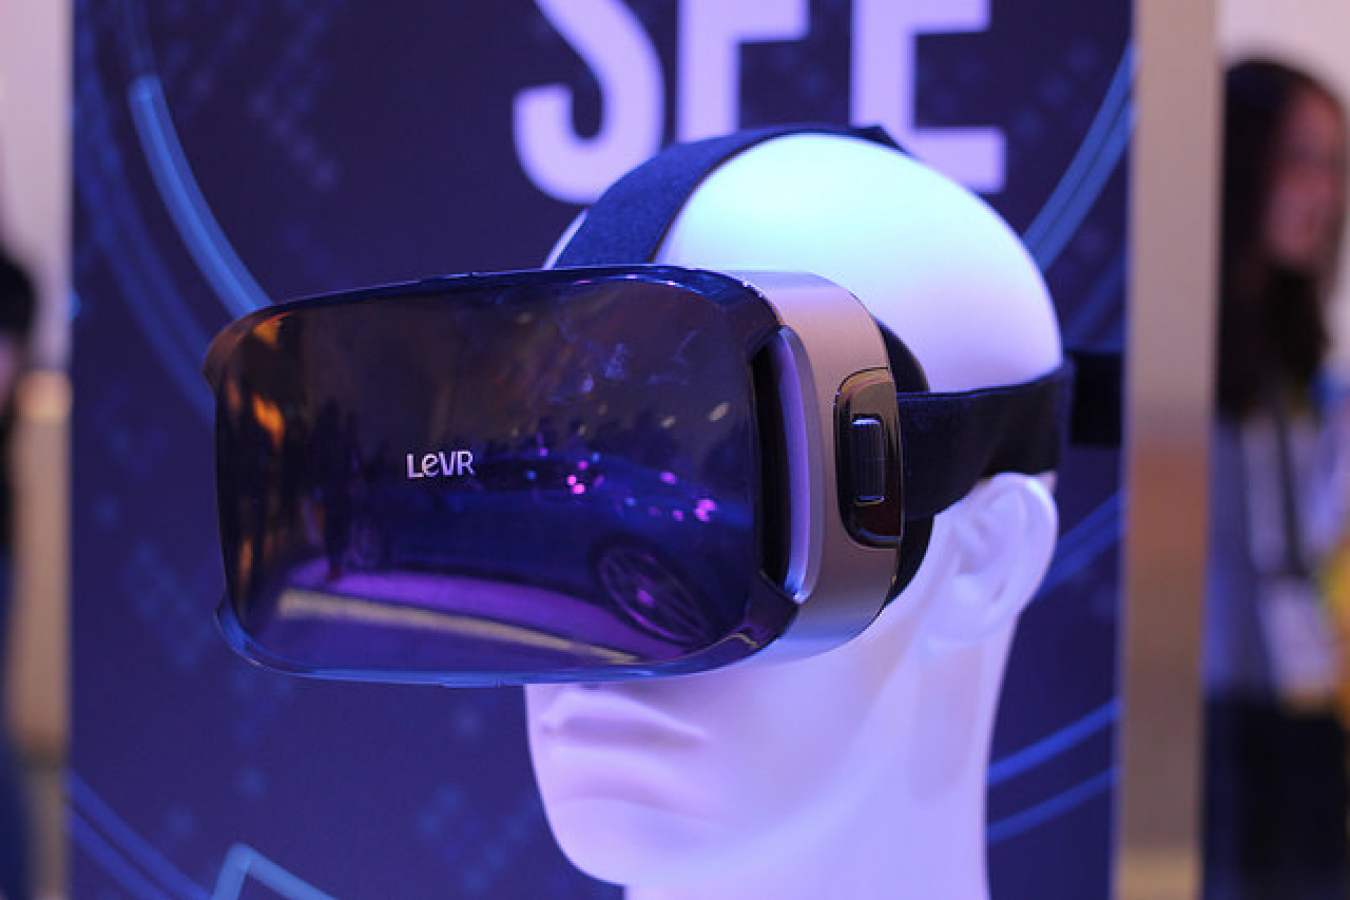 LeTv LeVR COOL1 VR Headset